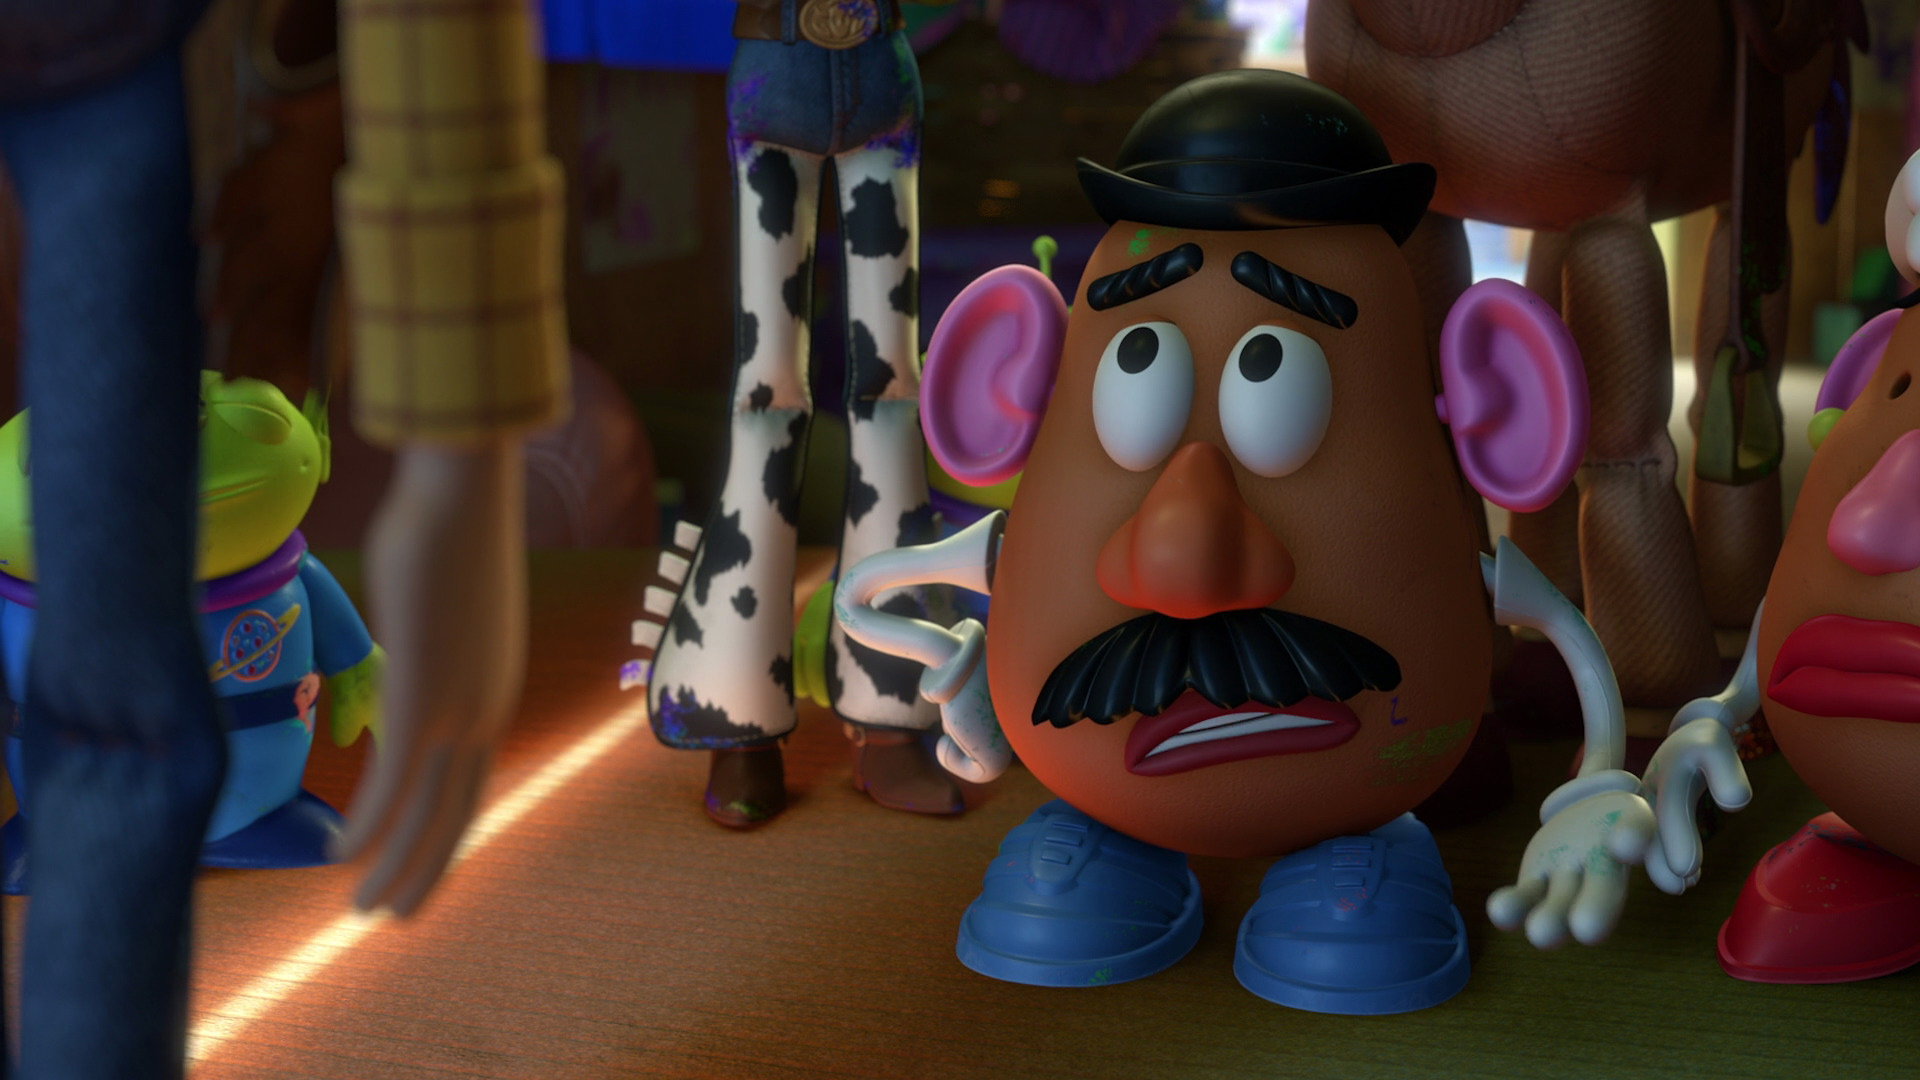 Monsieur patate personnage dans toy story pixar - Madame patate toy story ...